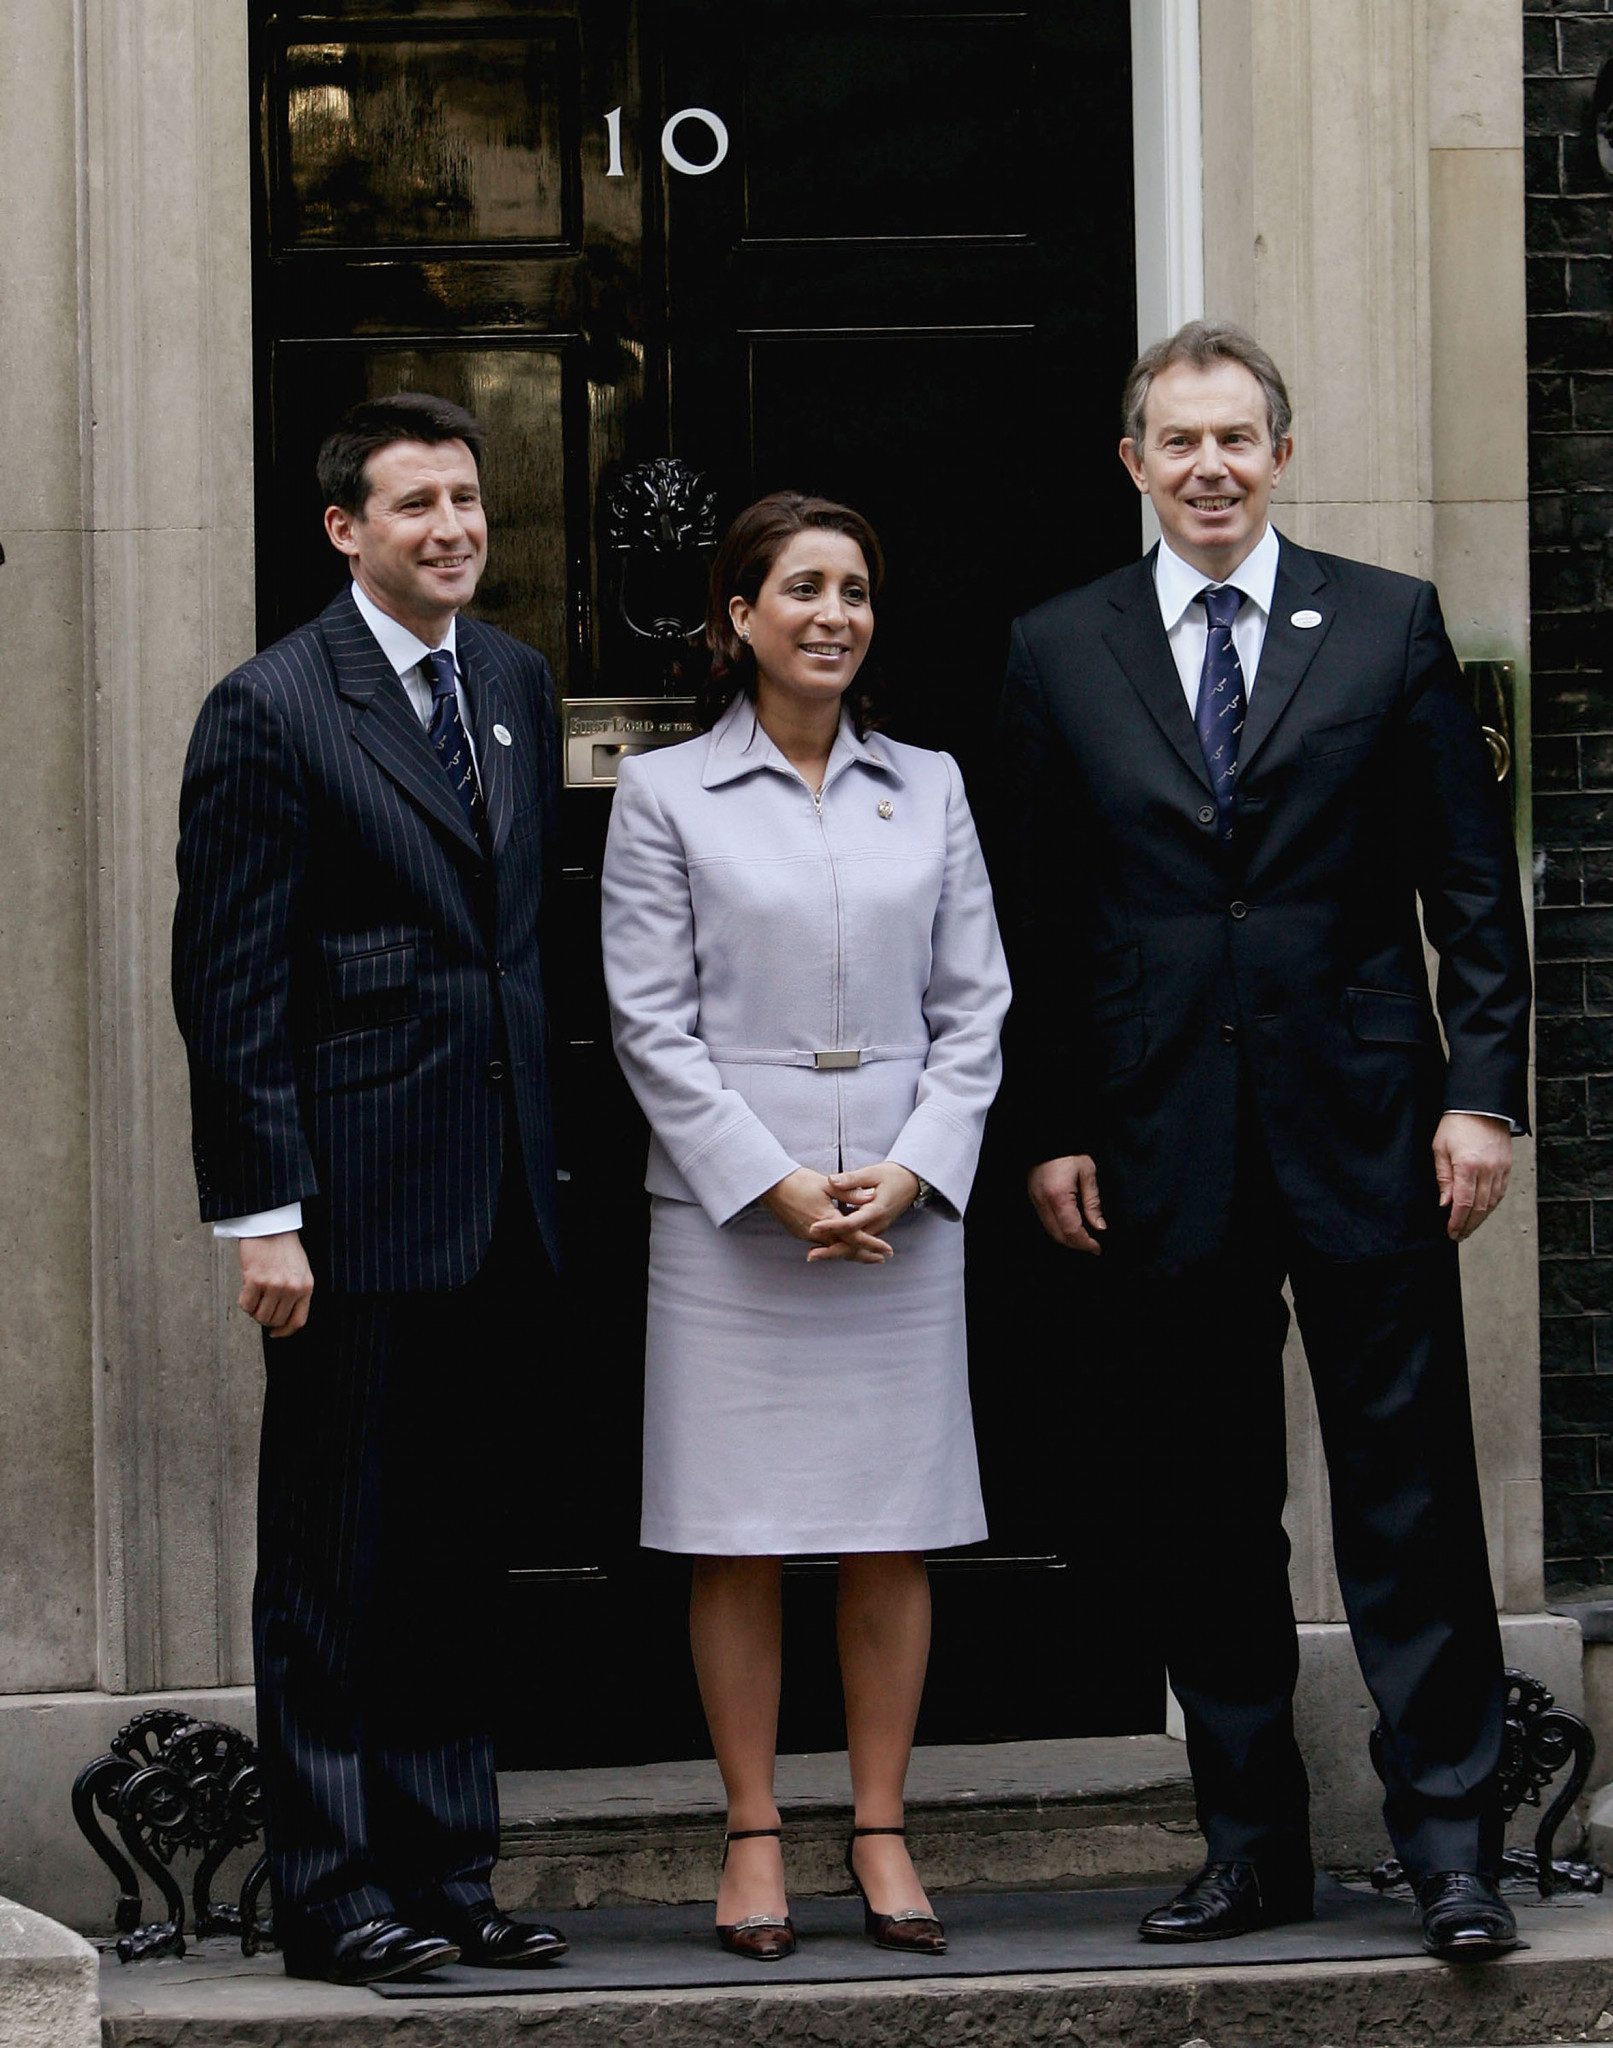 The IOC Evaluation Commission for the 2012 Olympics, led by Nawal El Moutawakel, were feted by the Queen and Prime Minister Tony Blair during their visit to London in 2005 ©Getty Images